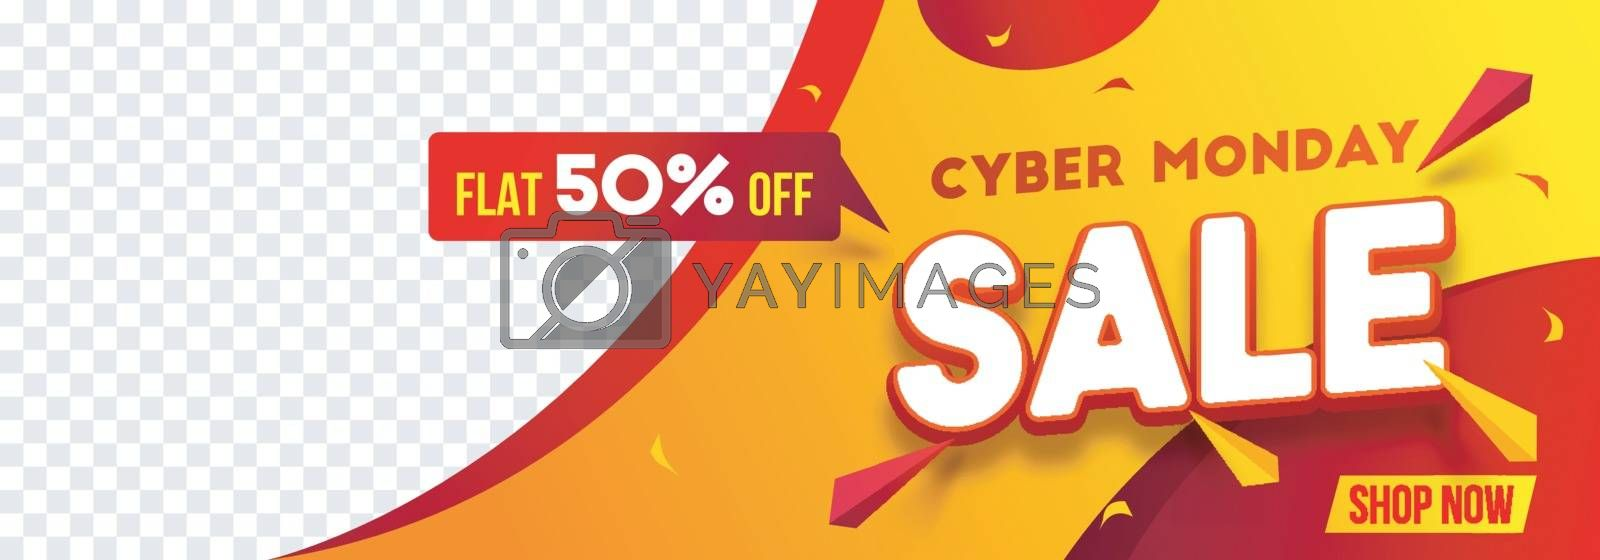 Website header or banner design with 50% discount offer for Cybe by aispl